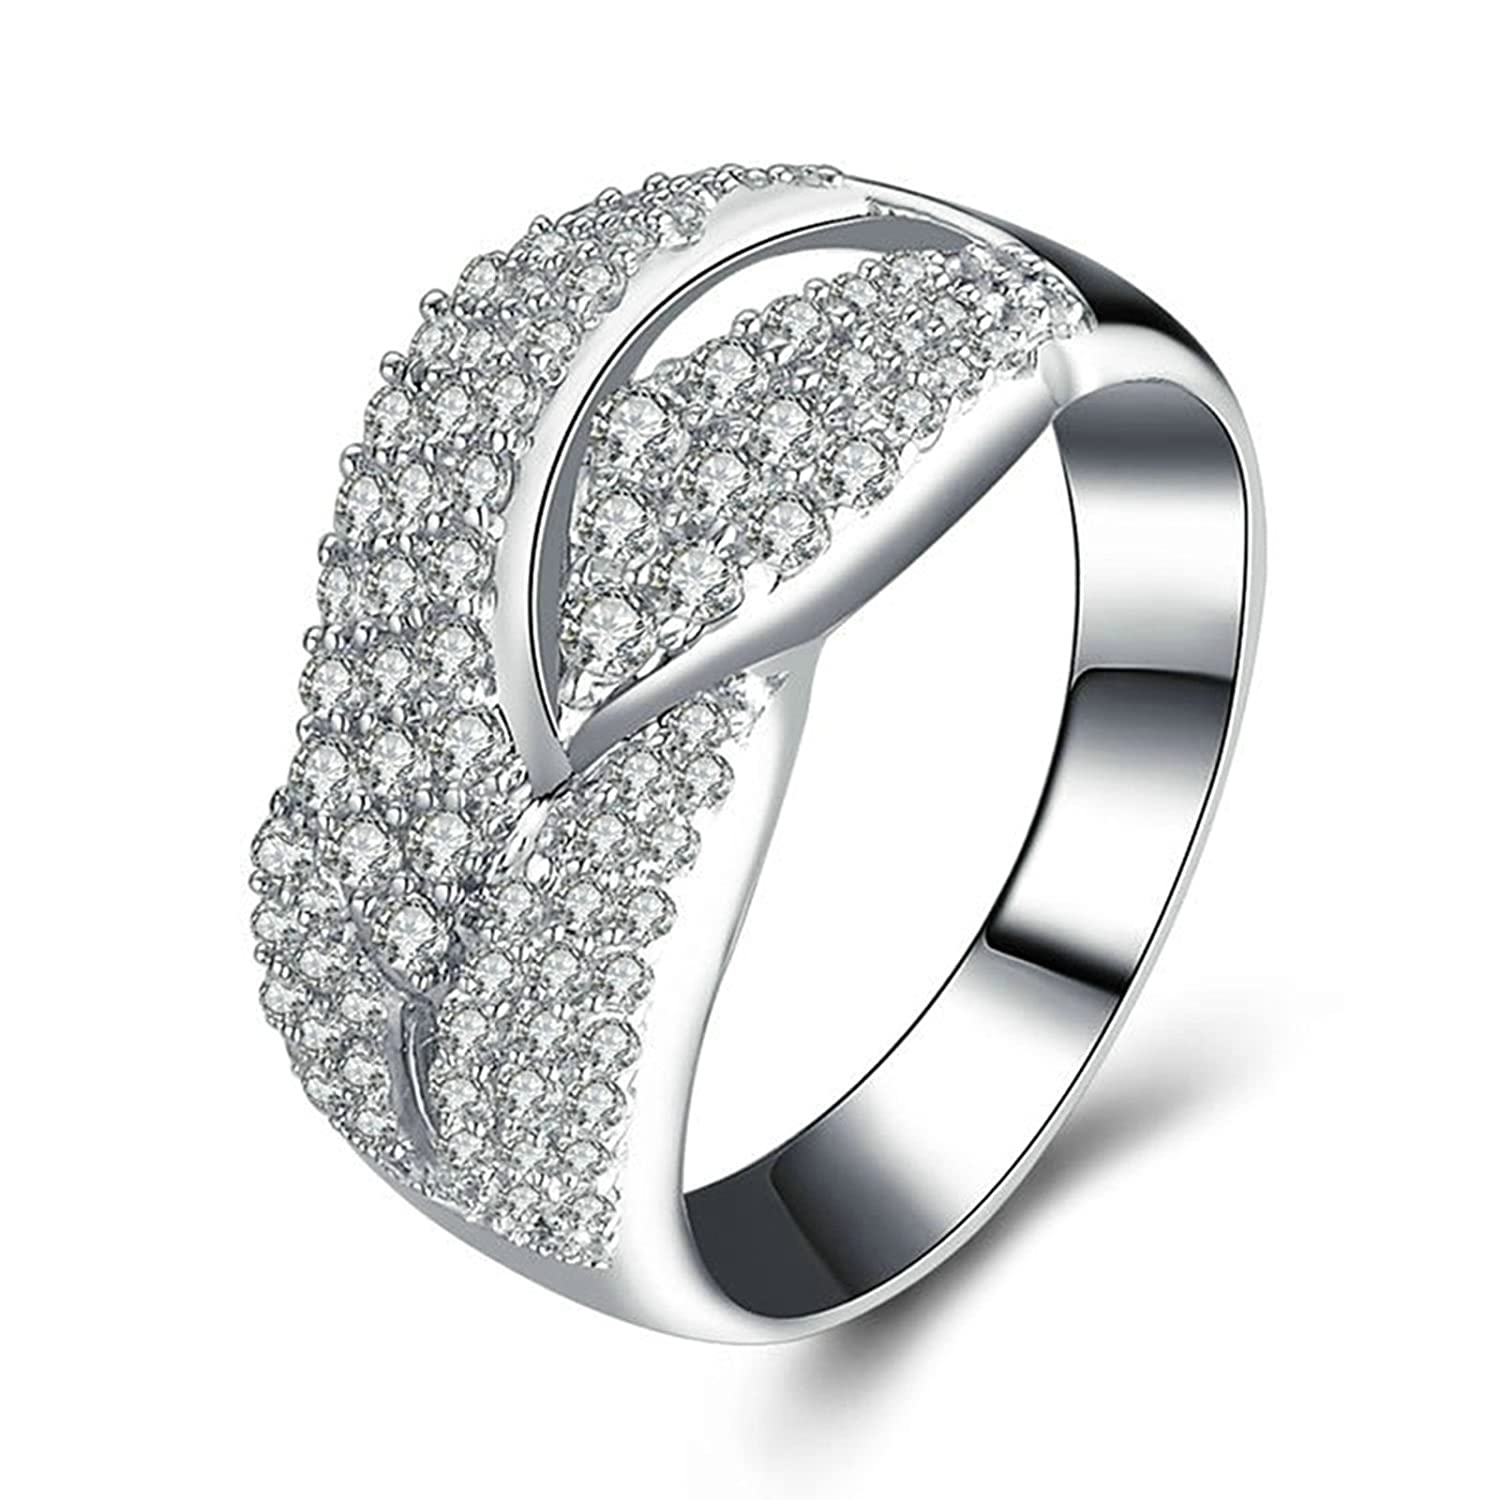 Amazon Aooaz Jewelry Wedding Ring Silver Material Irregular For Bride Bands: Wedding Bands For The Bride At Reisefeber.org